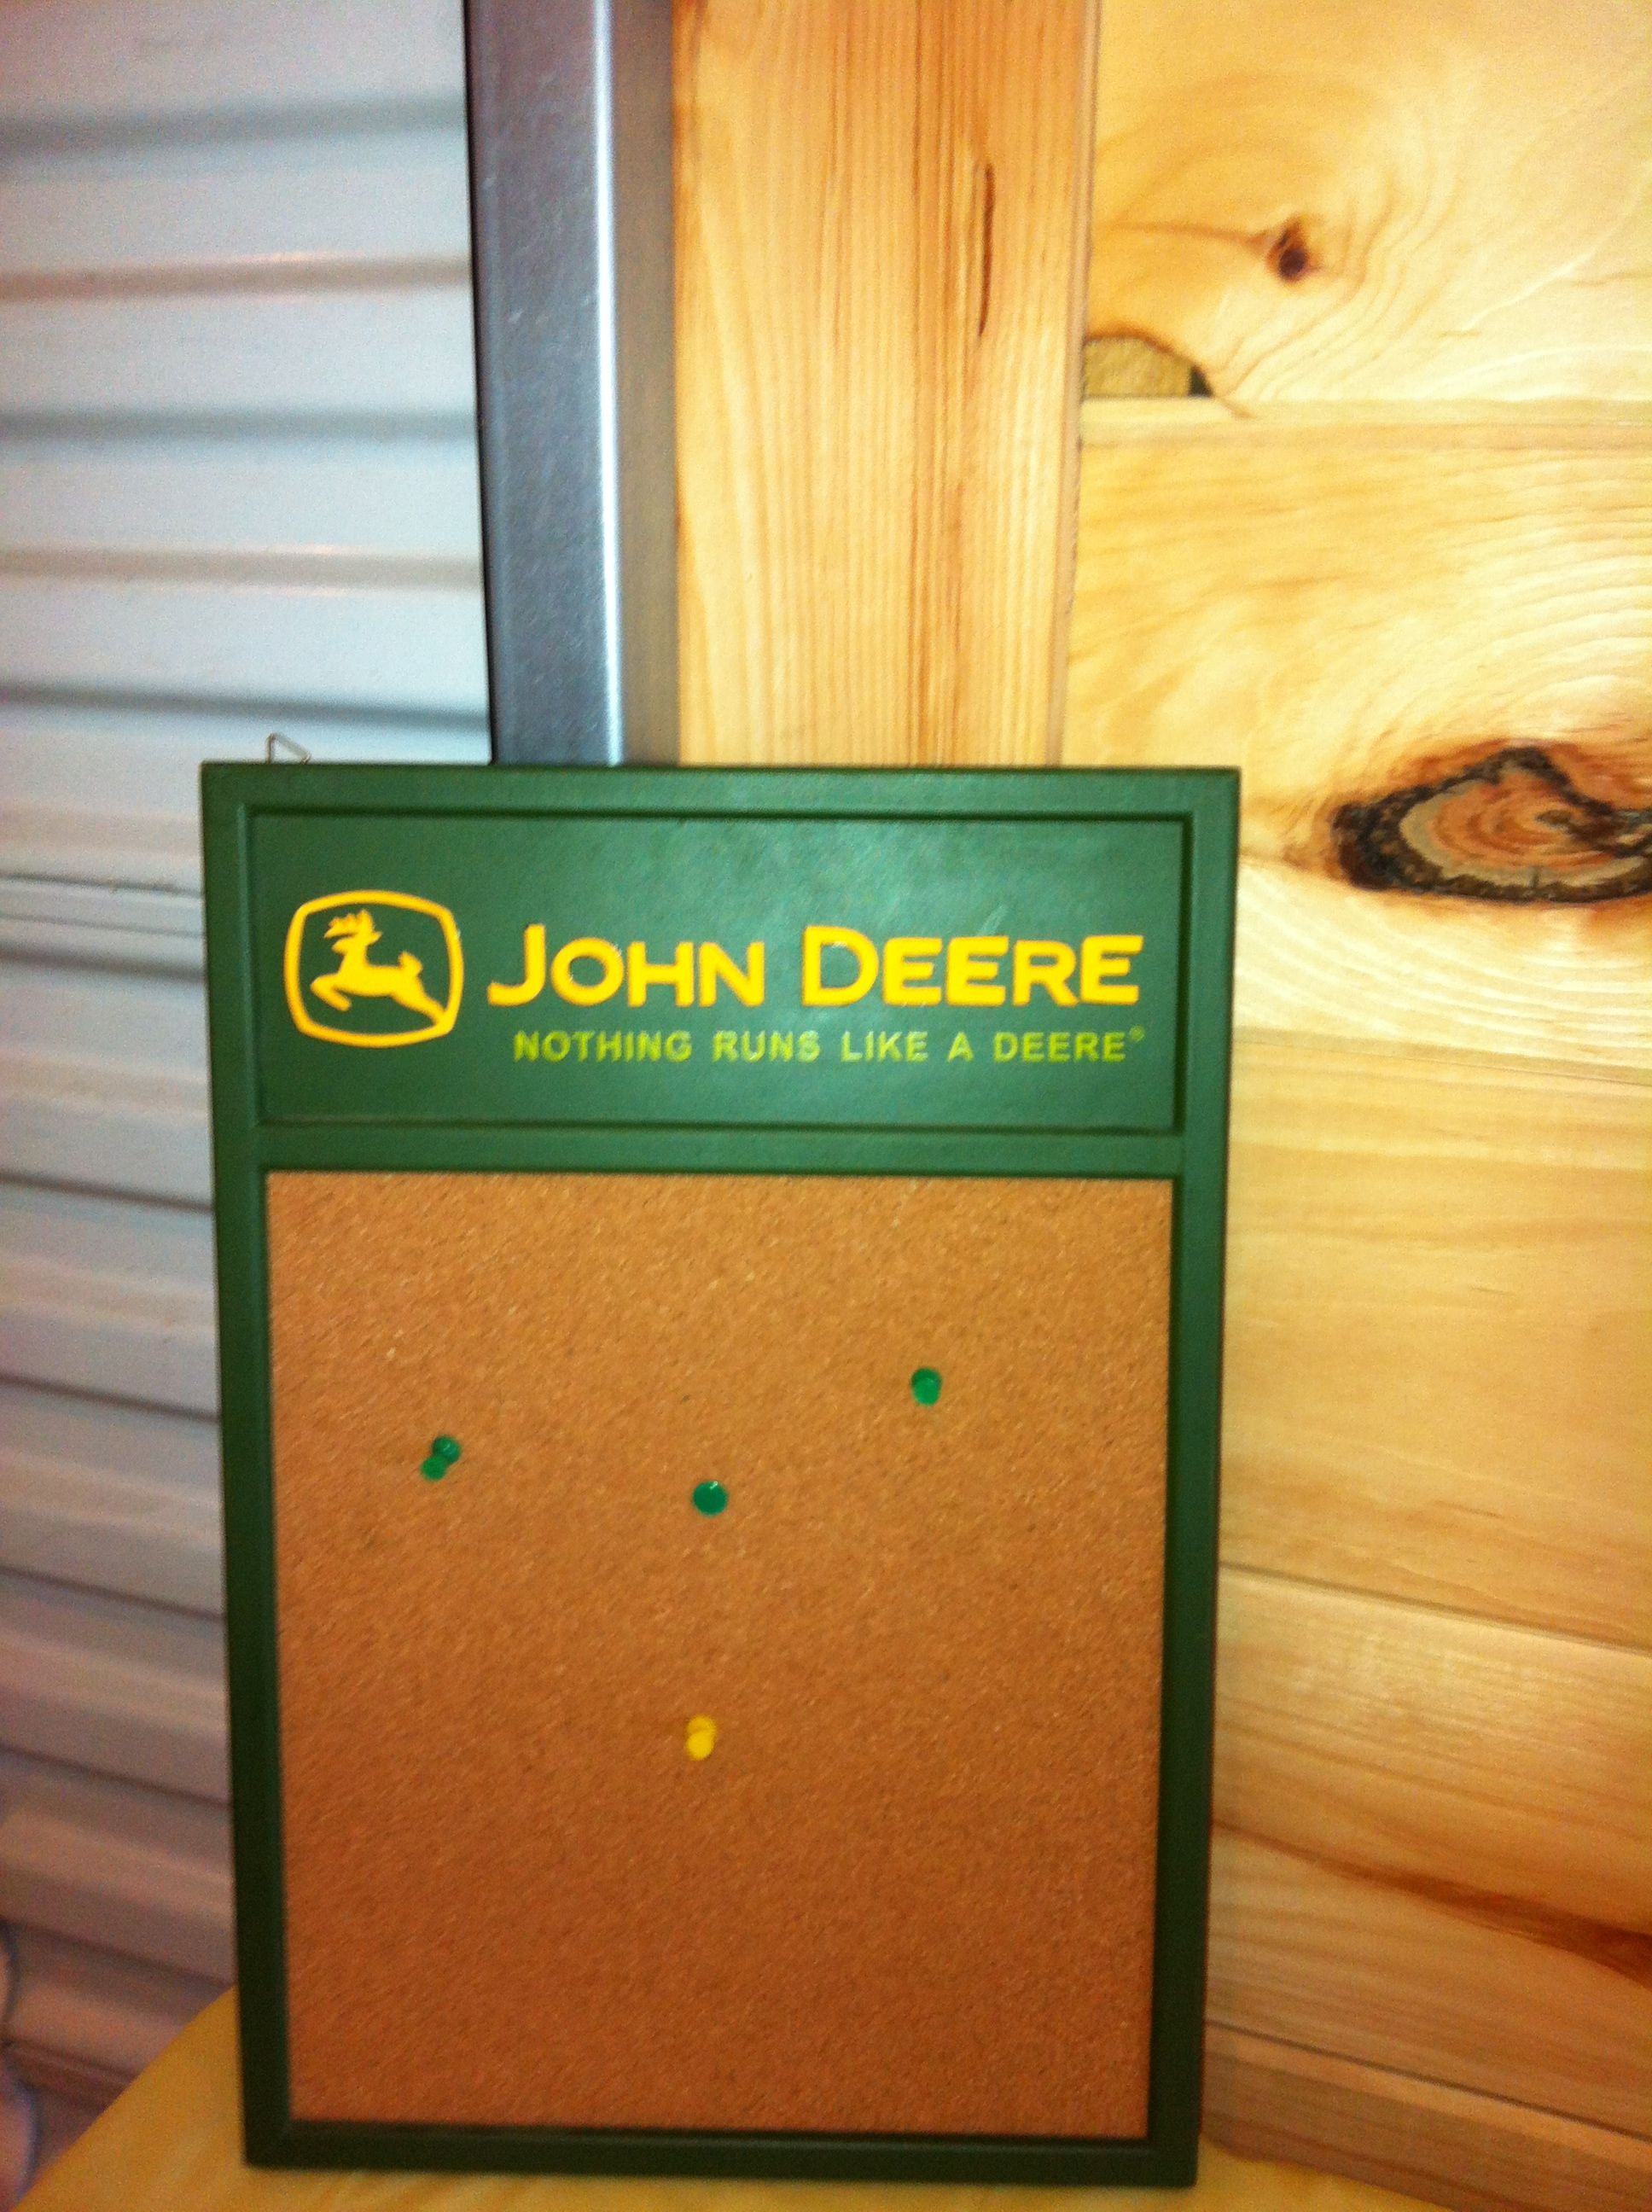 john deere board would be perfect for my kitchen matches my theme rh pinterest com